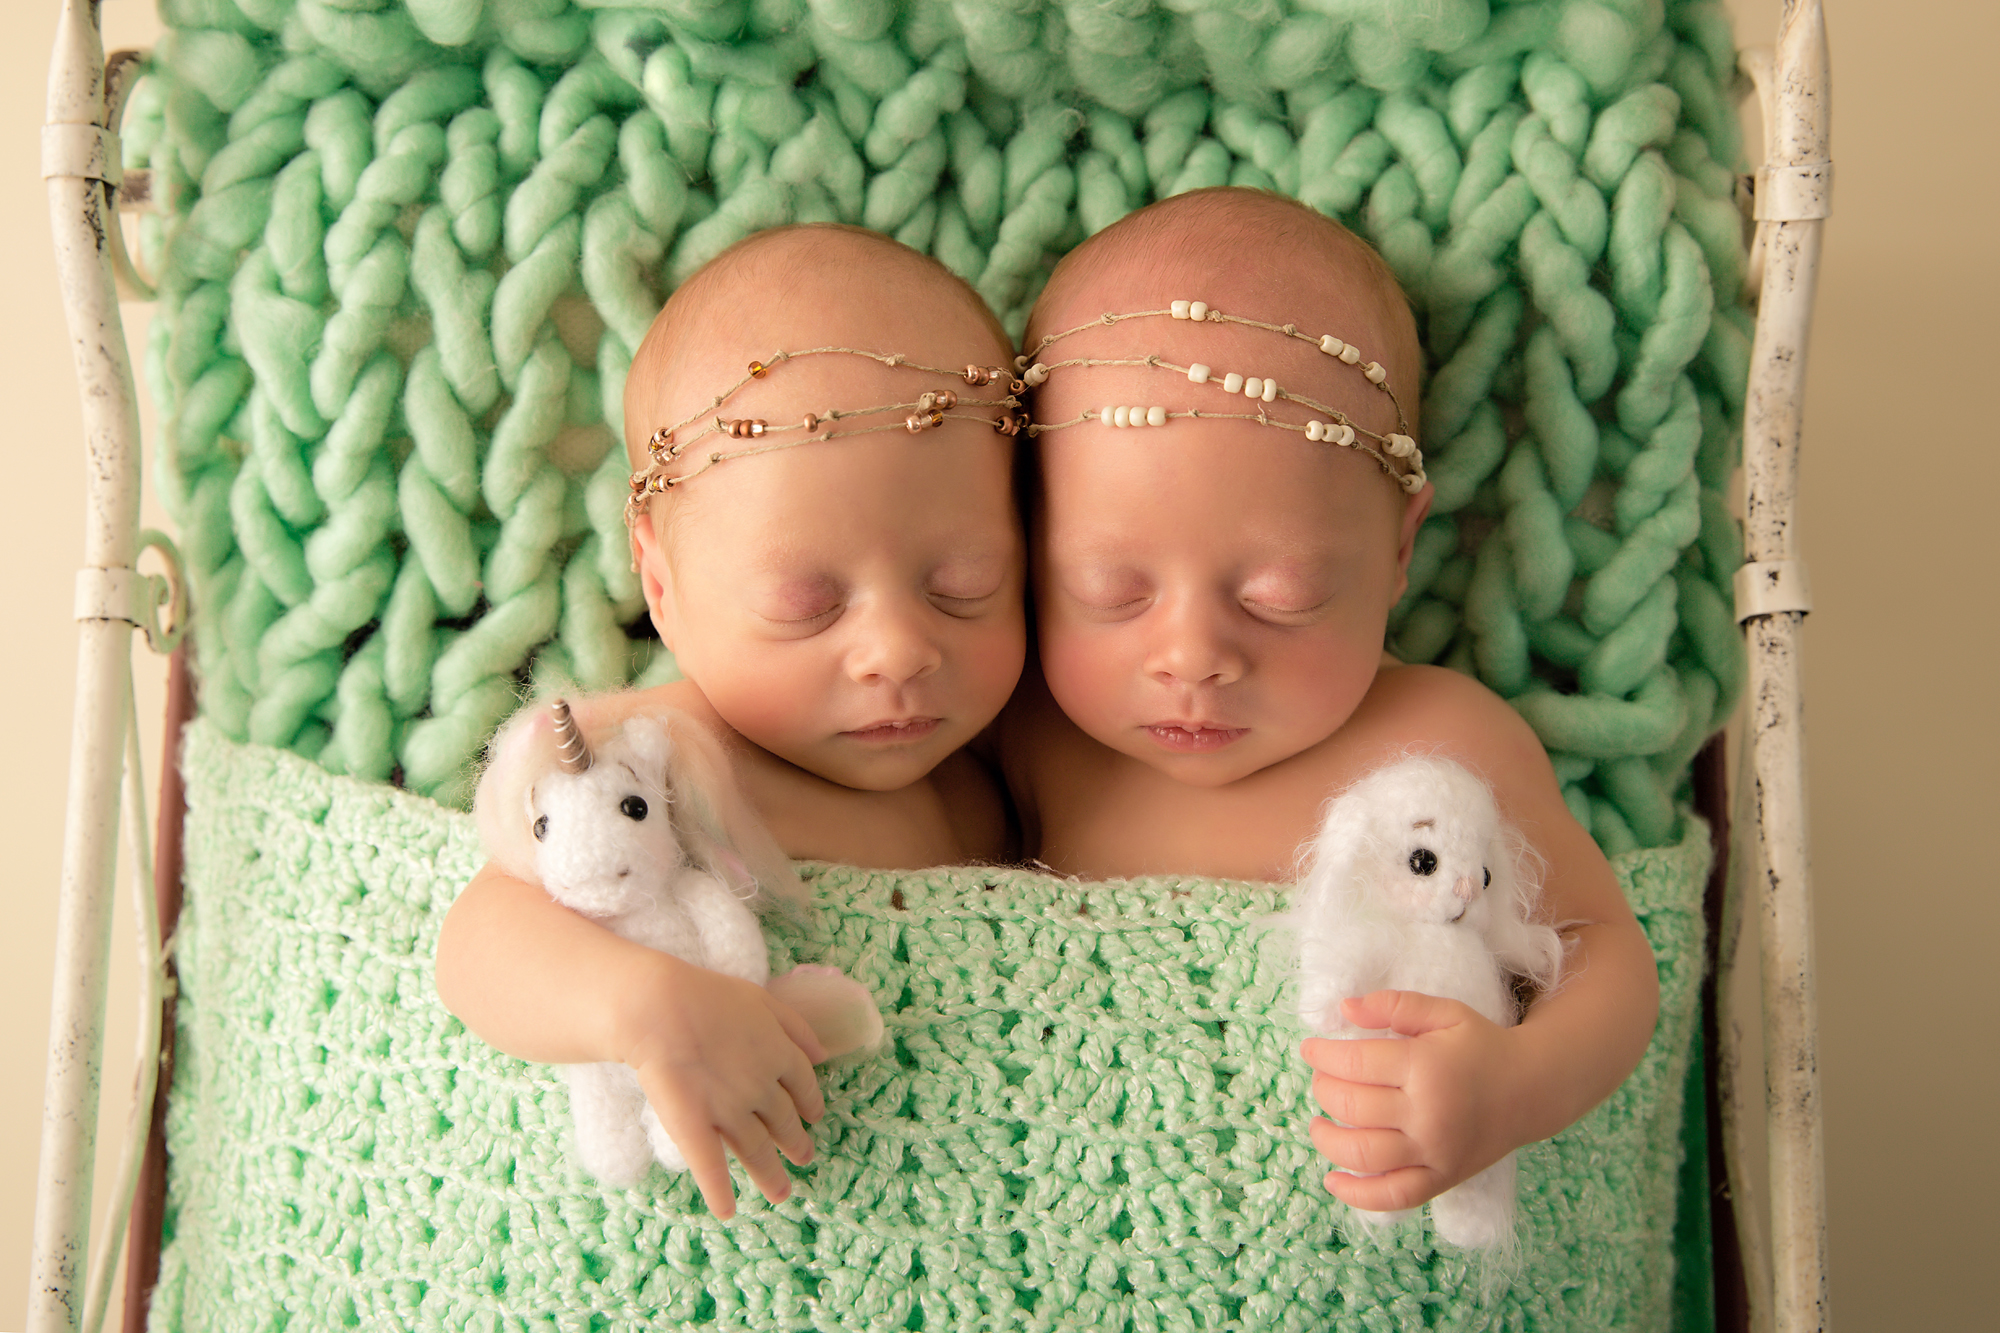 Twins Photography in Calgary, Alberta by Milashka Photography. Twin sisters are holding cute little toys in their hands and sleeping soundly on an antique bed